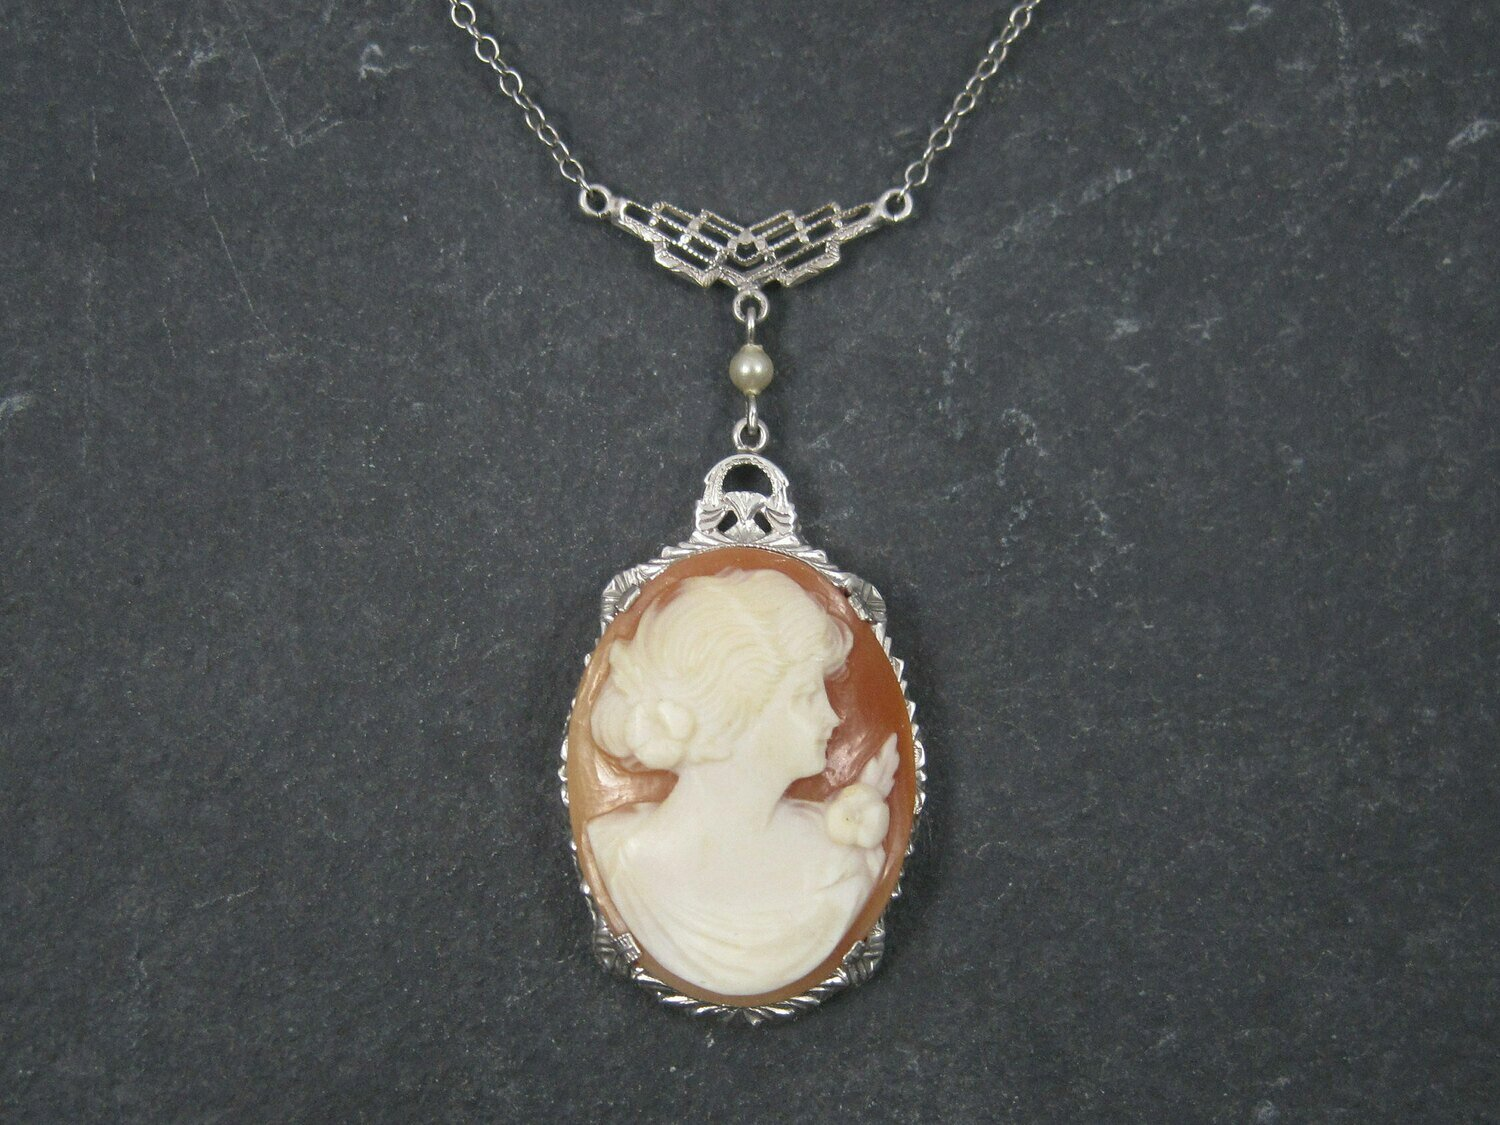 Antique 10K Art Deco Carved Cameo Necklace Choker 13 Inches